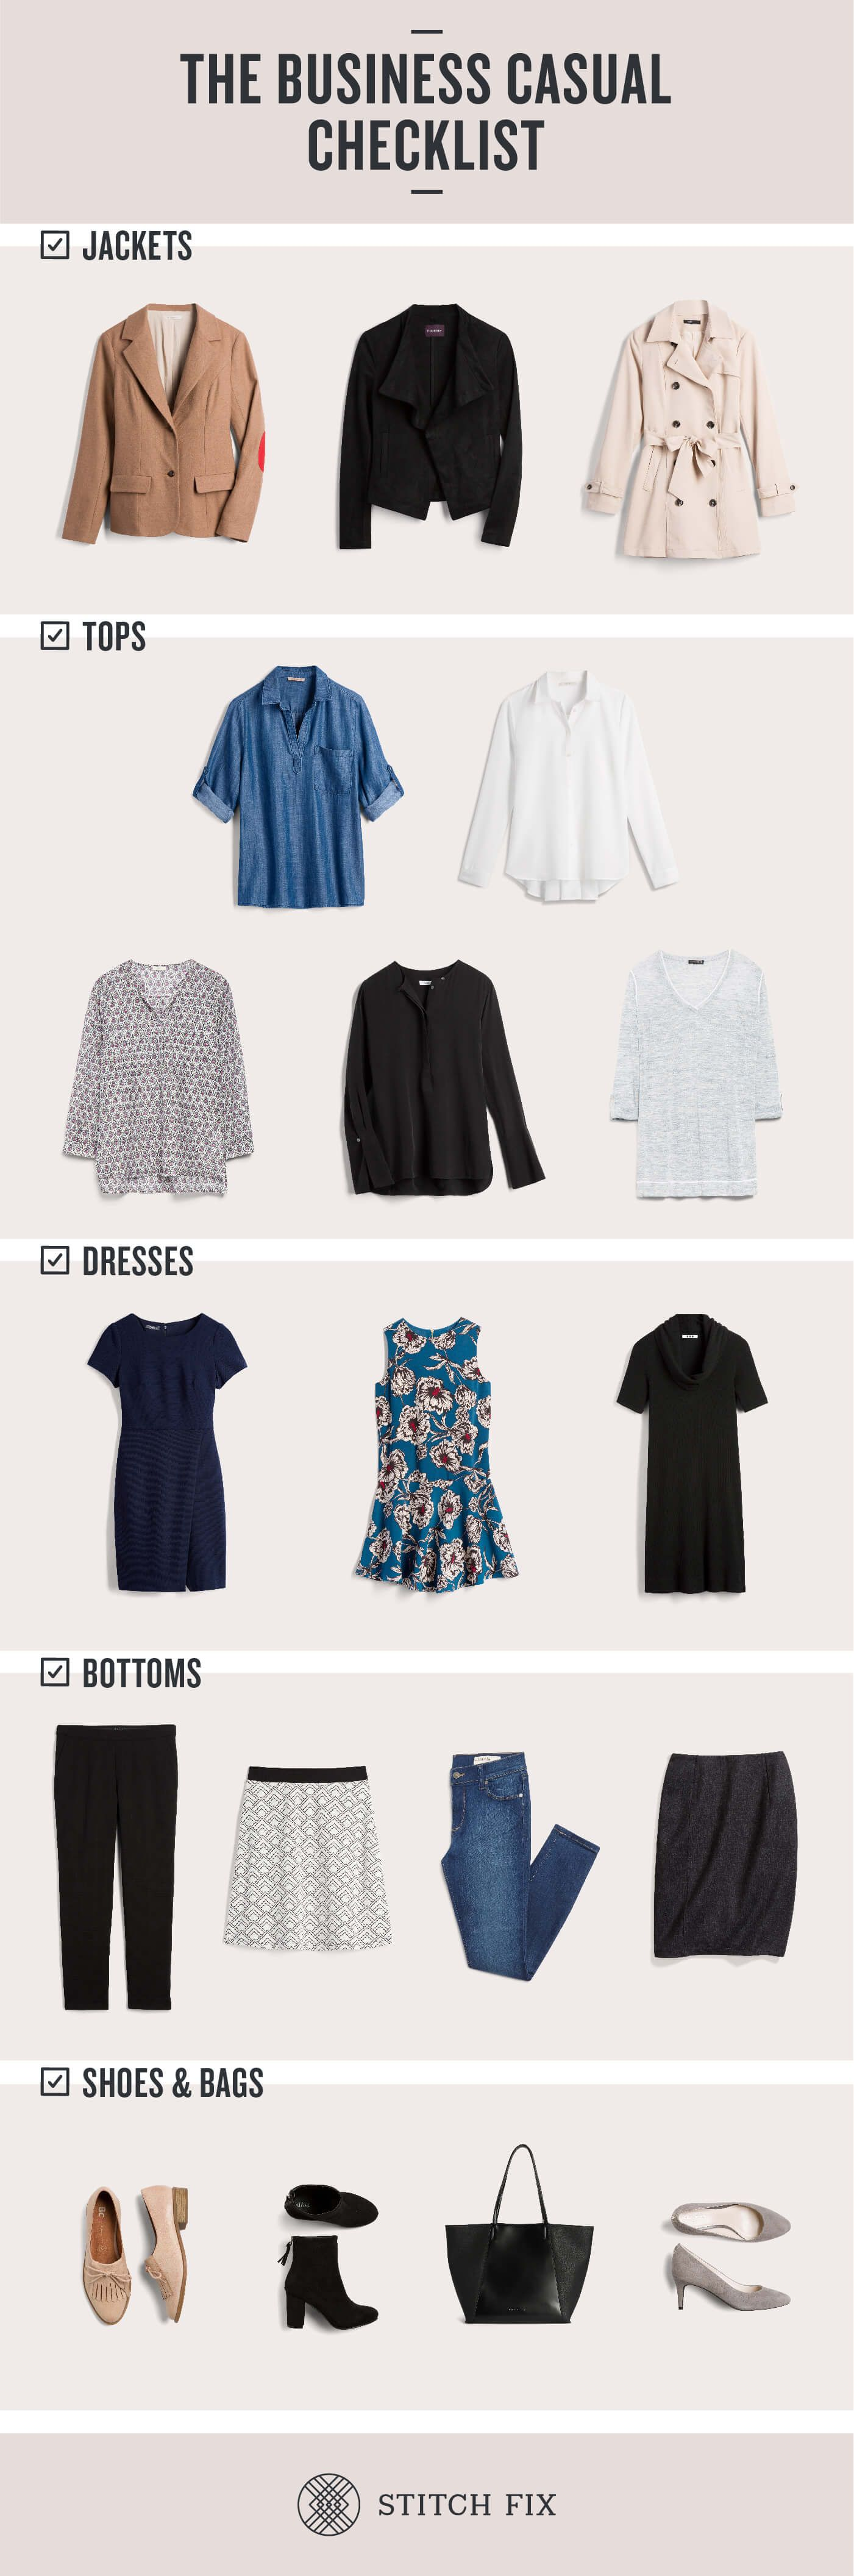 5a35613b62bf Here s how to build up your business casual wardrobe. Start With the Basics  A well-rounded assortment of basic pieces is the perfect starting point for  your ...